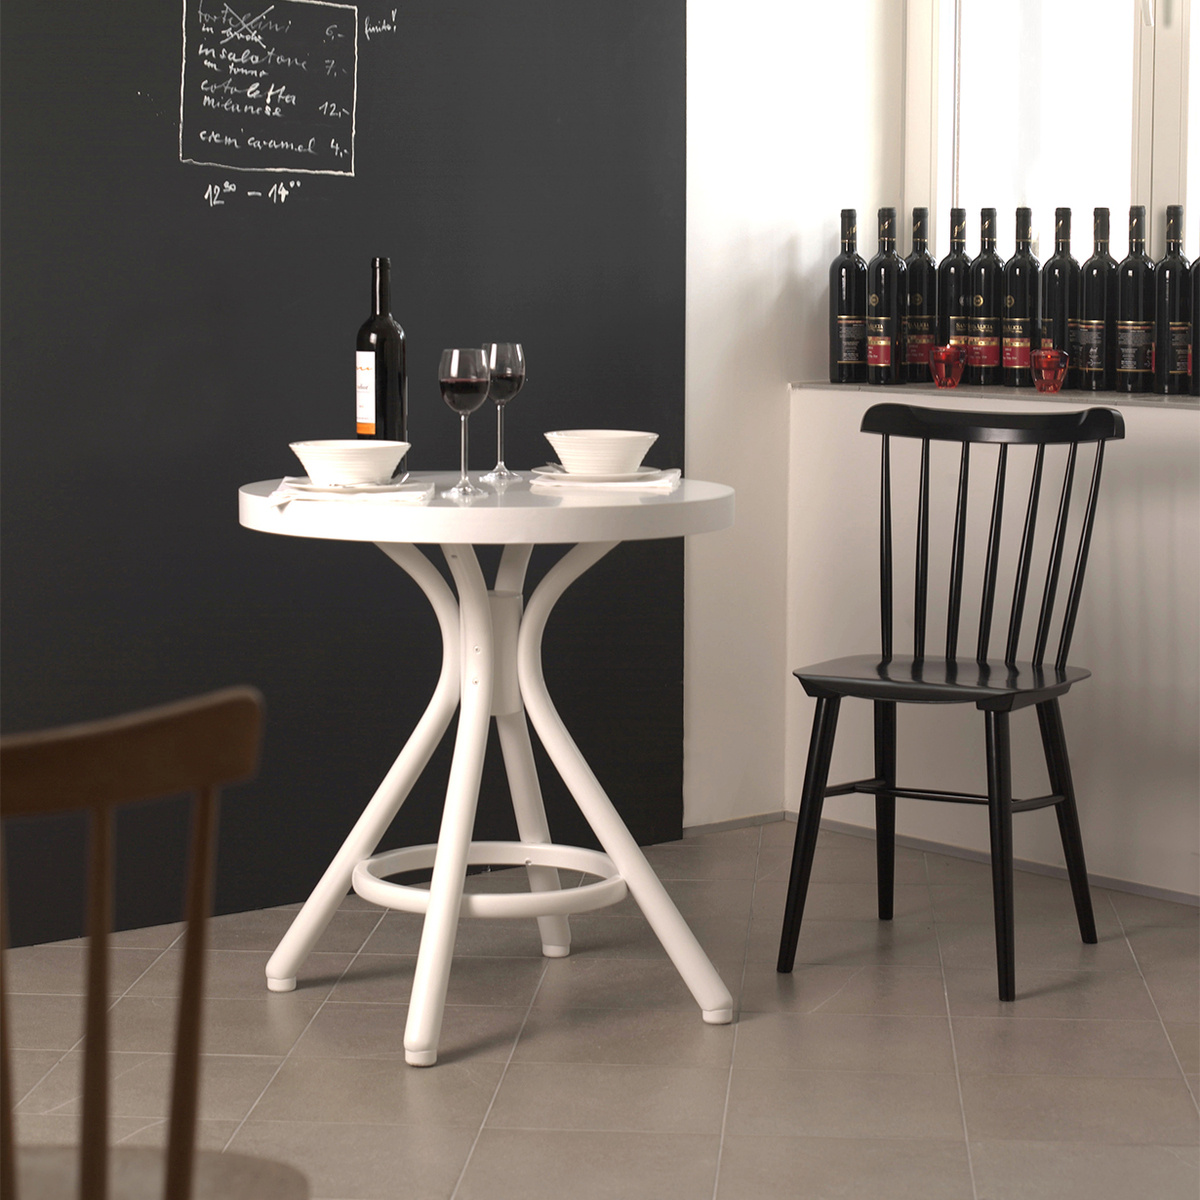 Sedia ironica nera lovethesign for Sedie industrial style